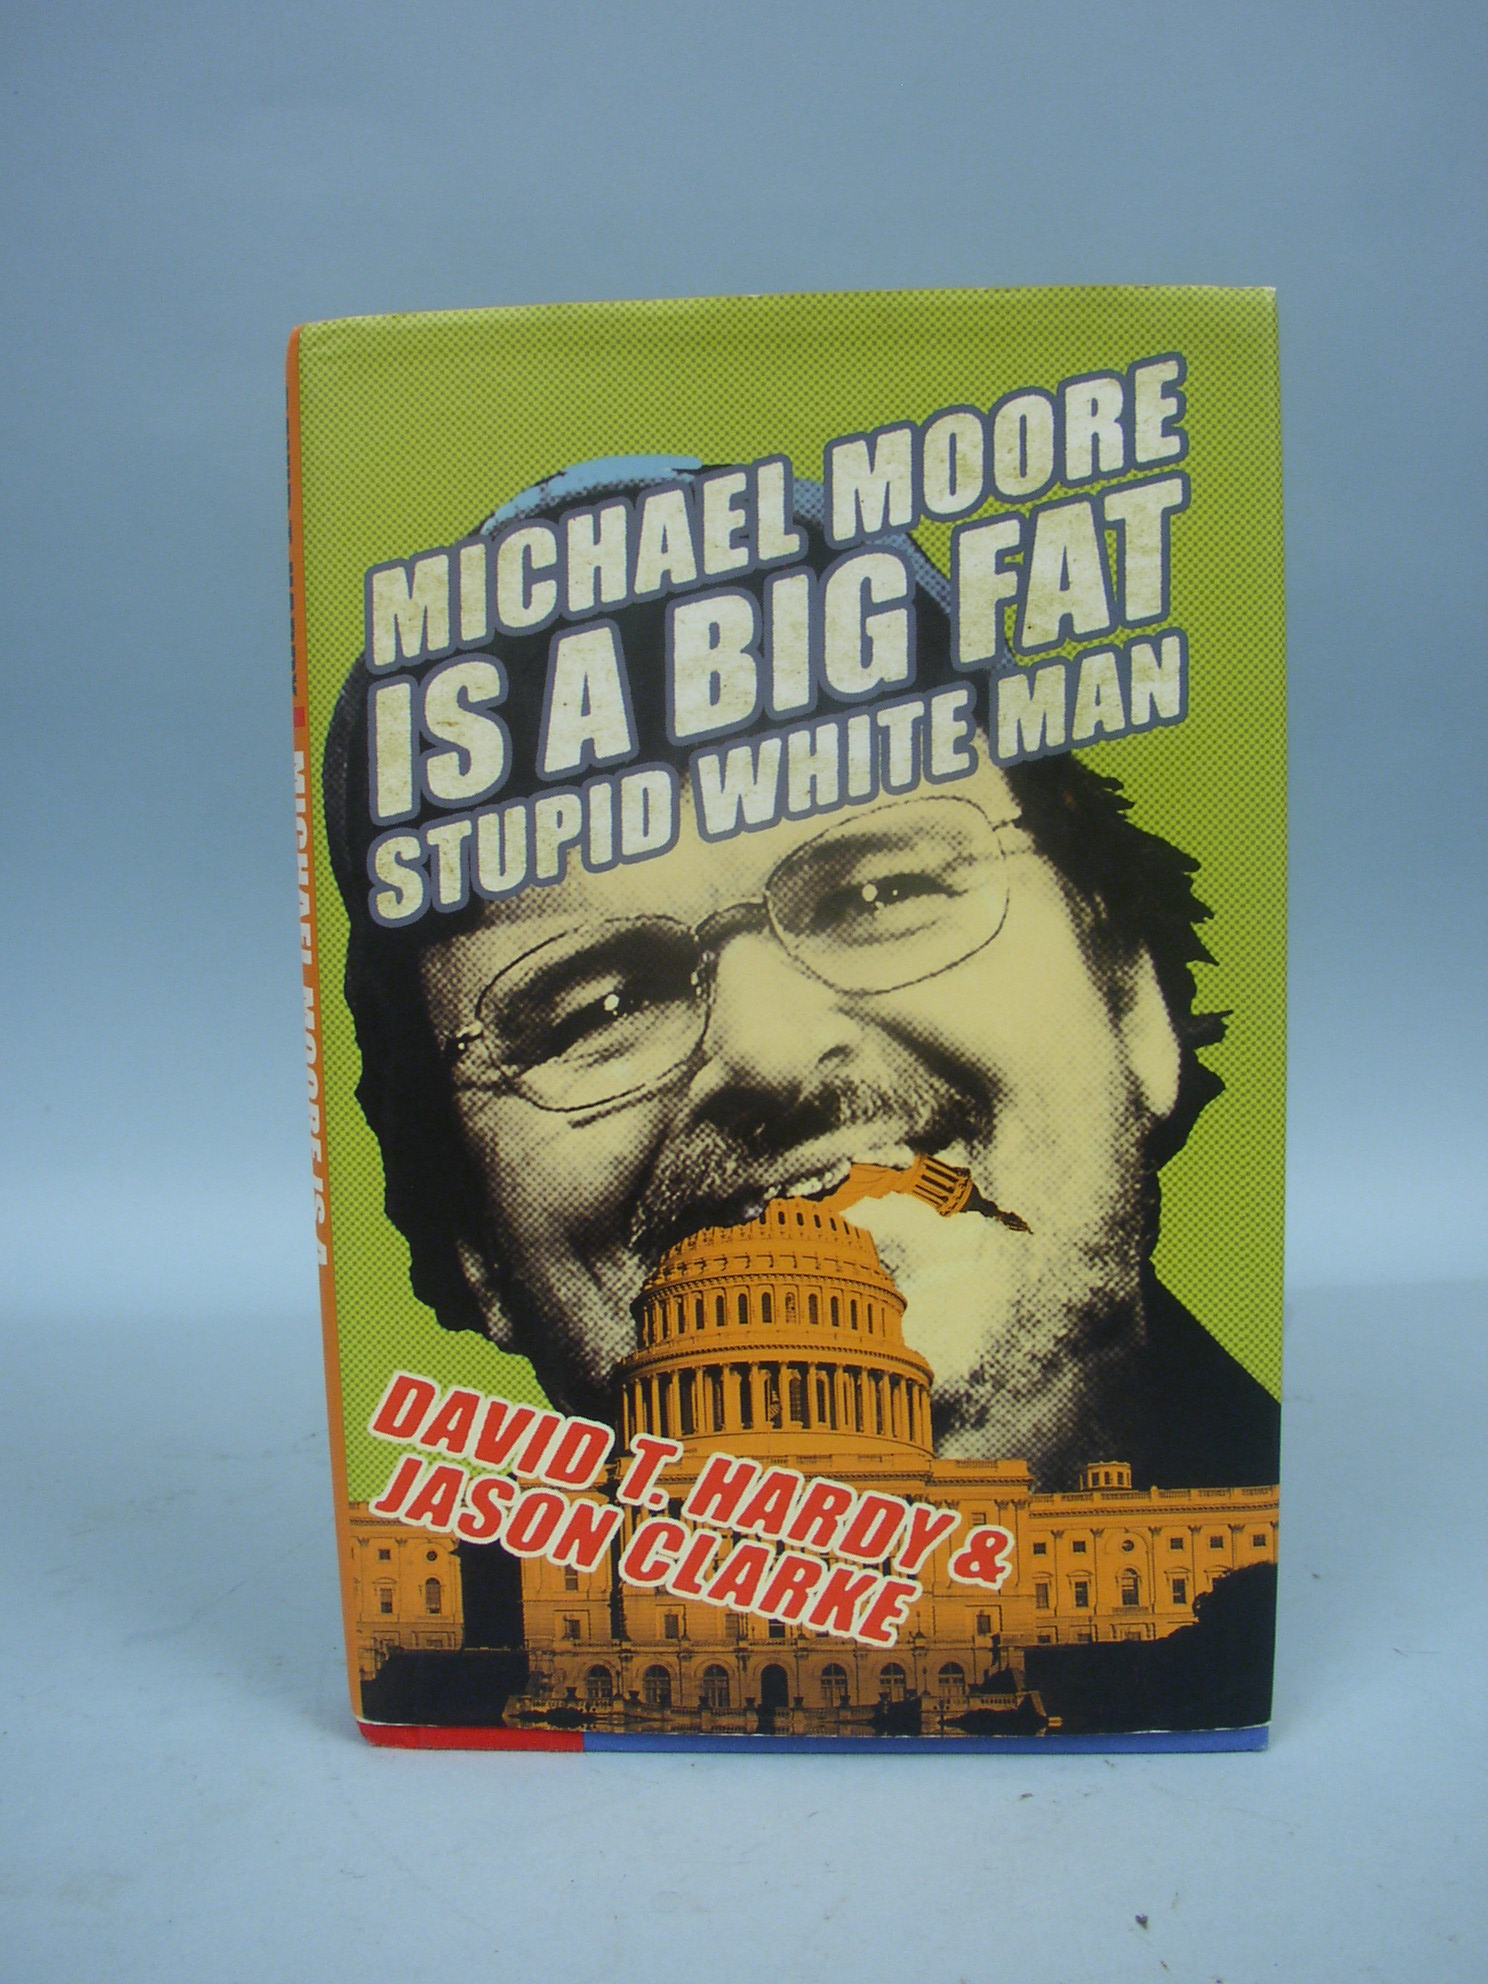 a review of stupid white men a book by michael moore Find helpful customer reviews and review ratings for stupid white men at amazoncom read honest and unbiased product reviews michael moore's book promises.